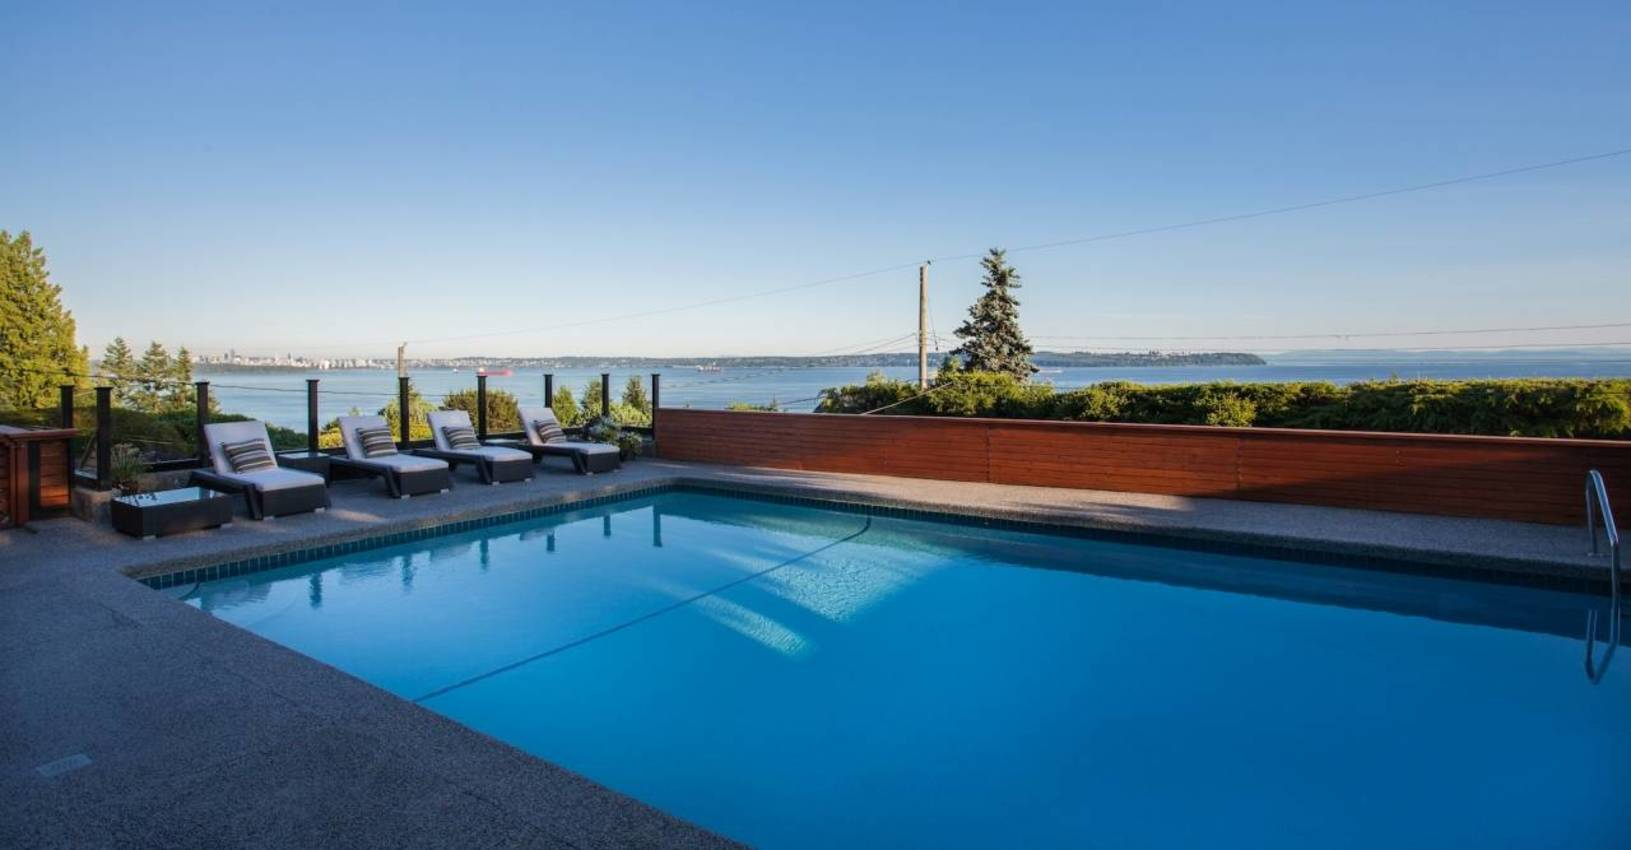 Huge Pool Overlooking View at 4125 Burkehill Place, Bayridge, West Vancouver